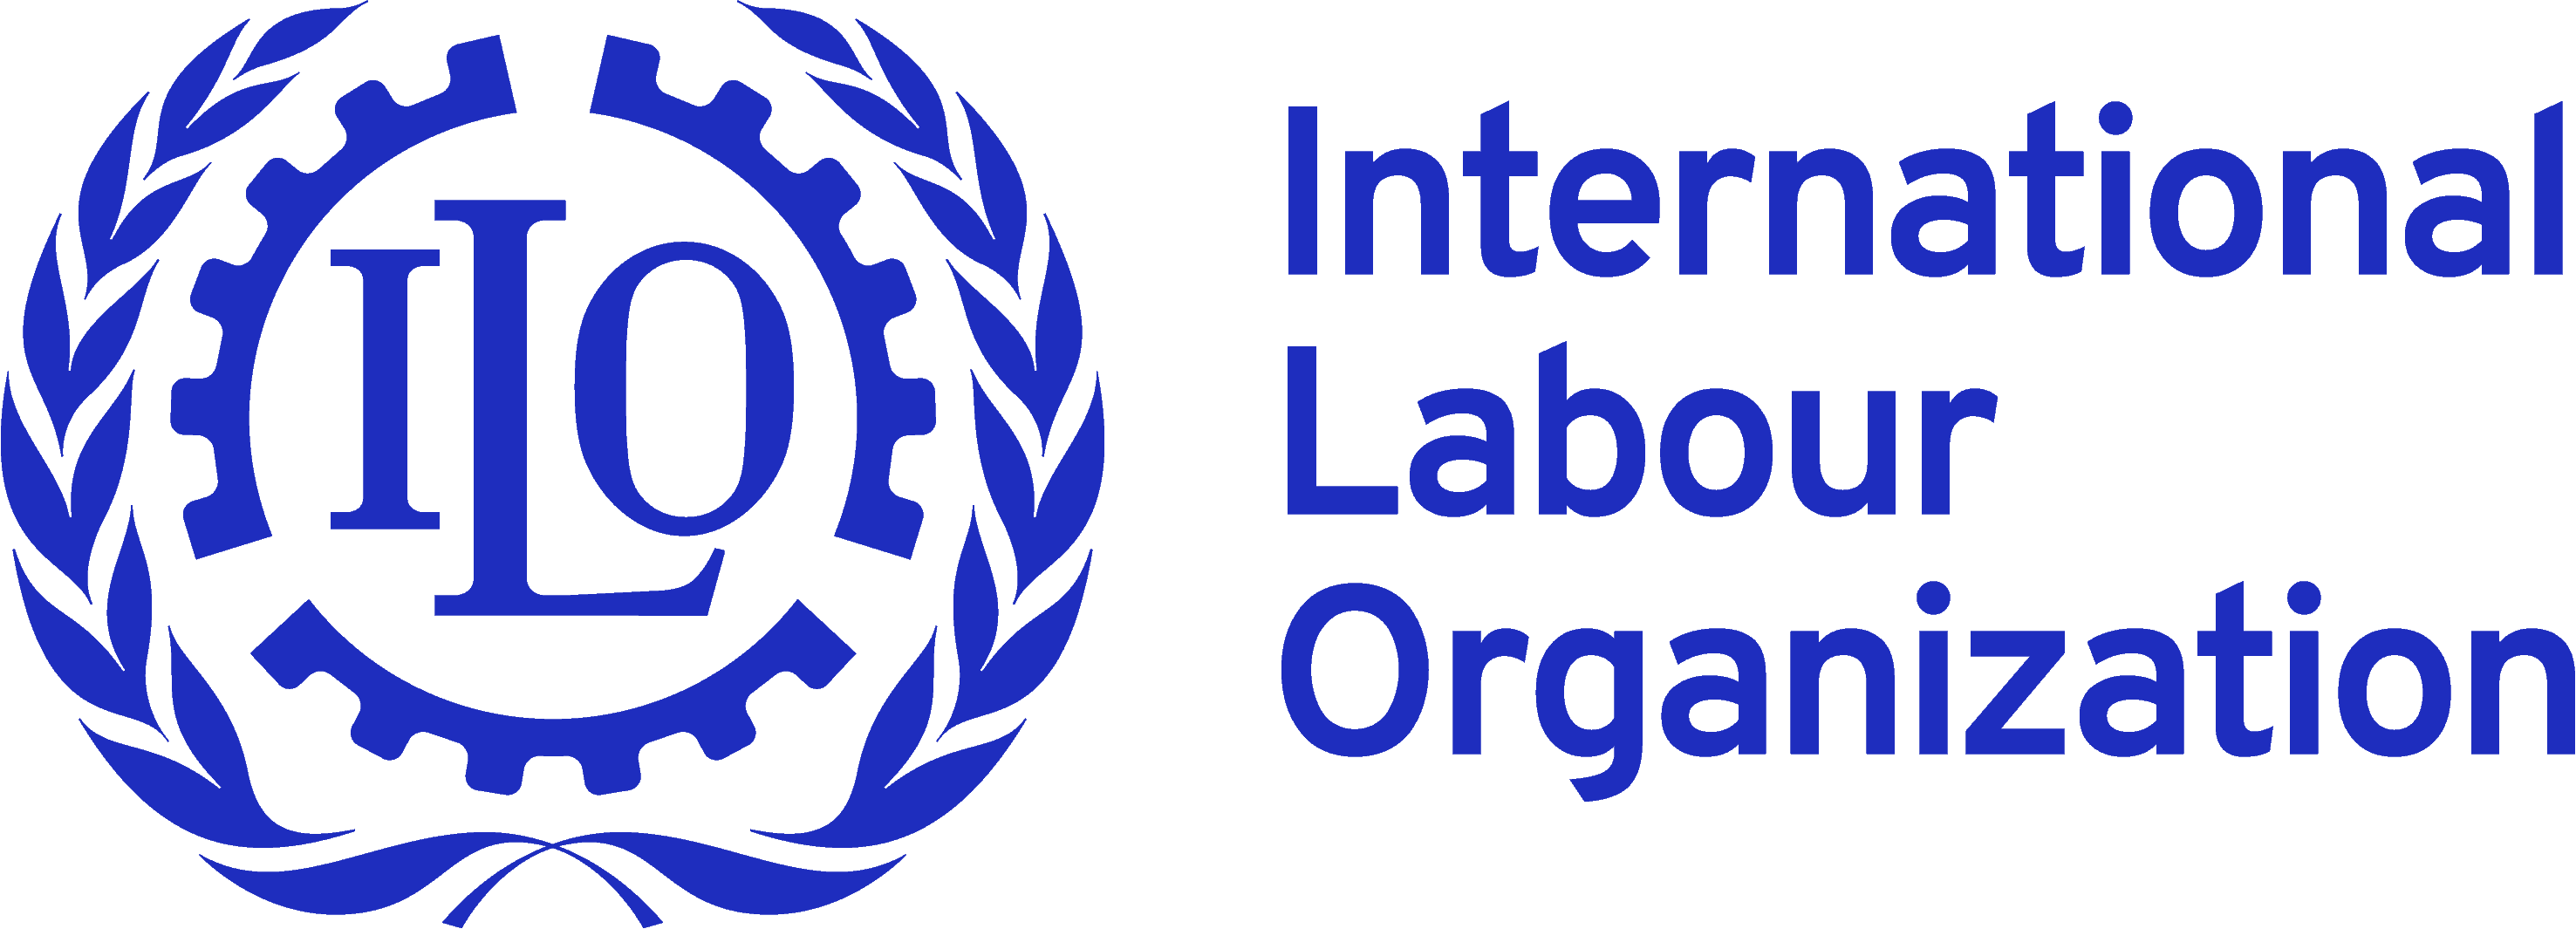 https://maritime.law/wp-content/uploads/2020/06/logo-international-labour-organization-01.png